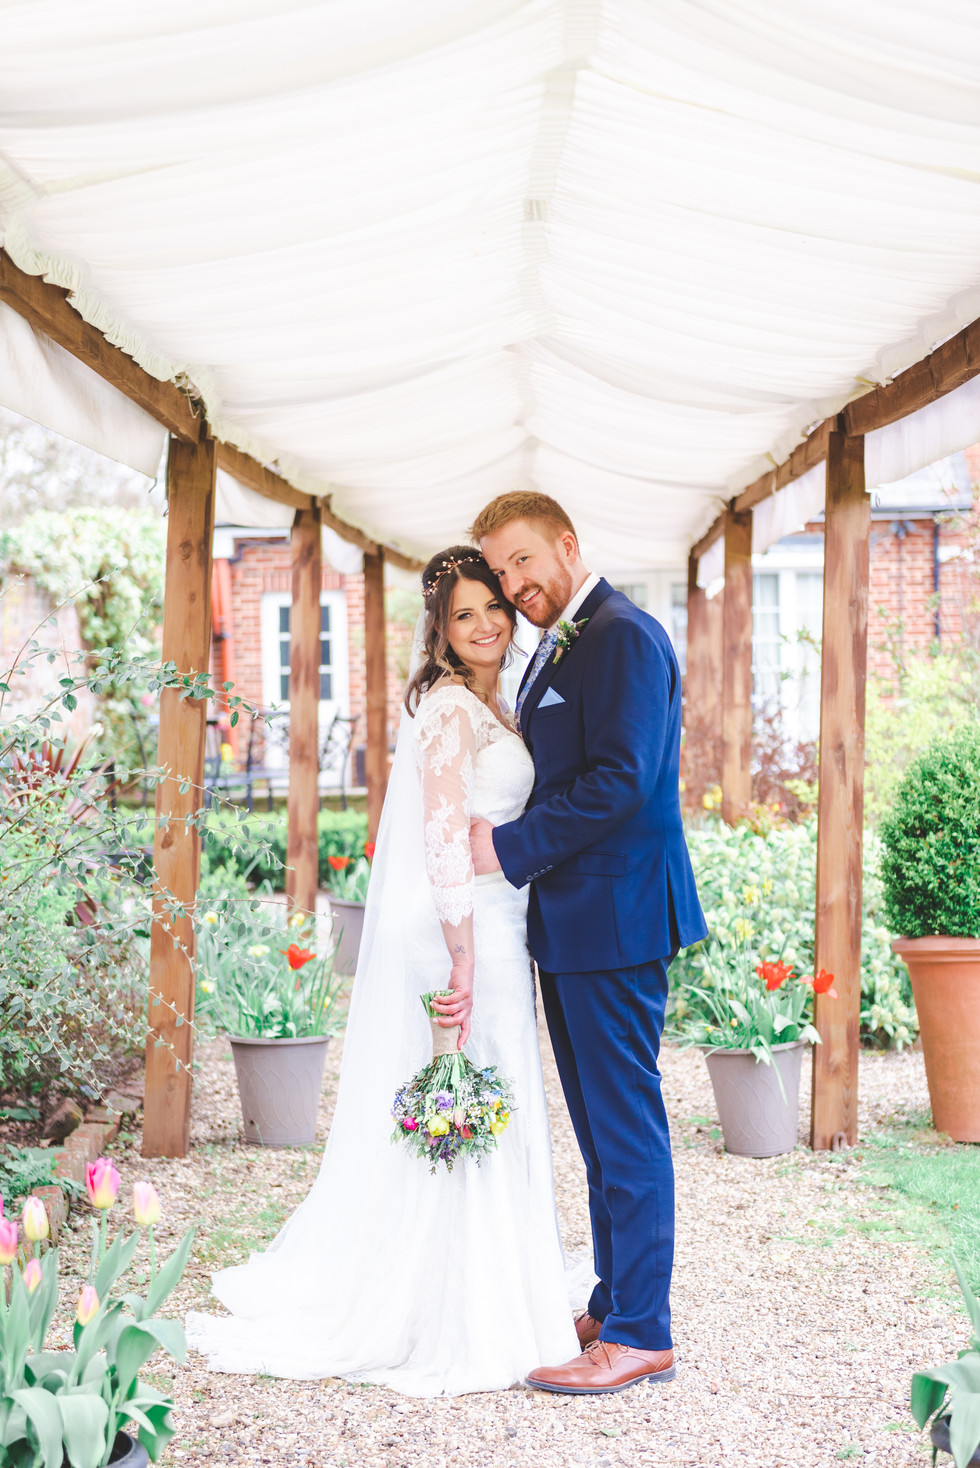 Bride and Groom stand under marquee archway surrounded by plants and flowers